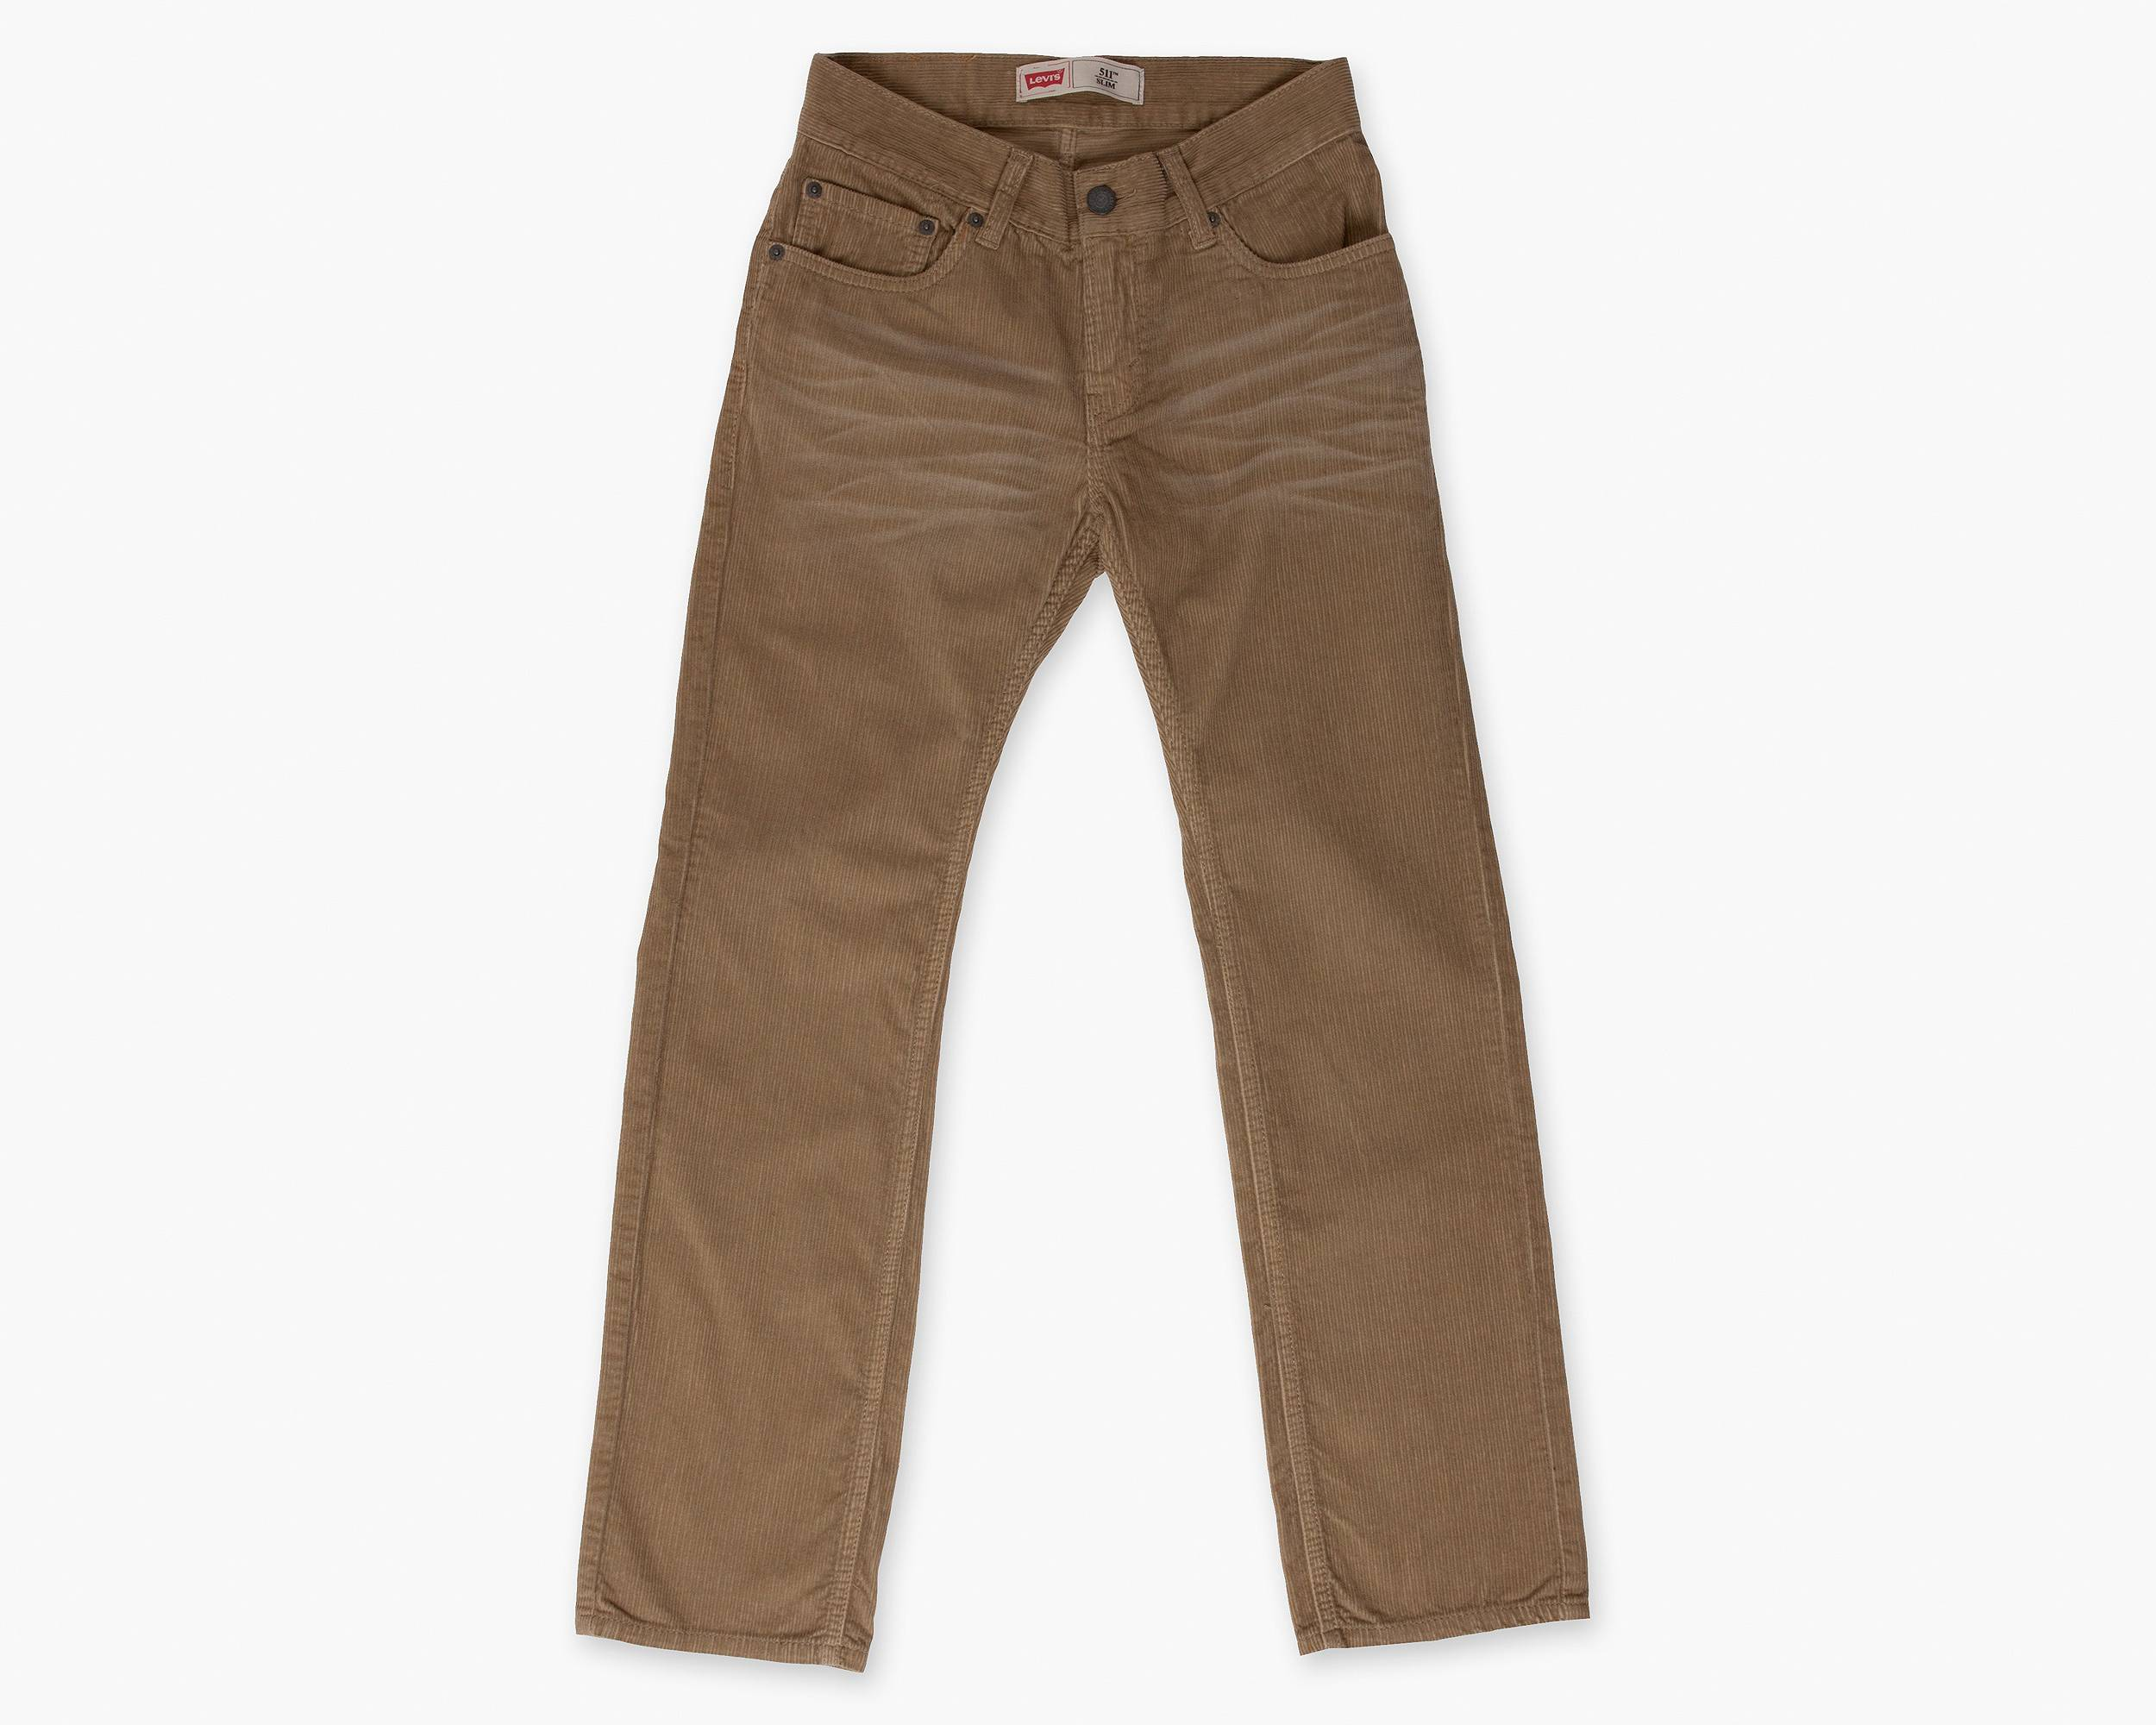 Find great deals on eBay for boys corduroy pants size 8. Shop with confidence.